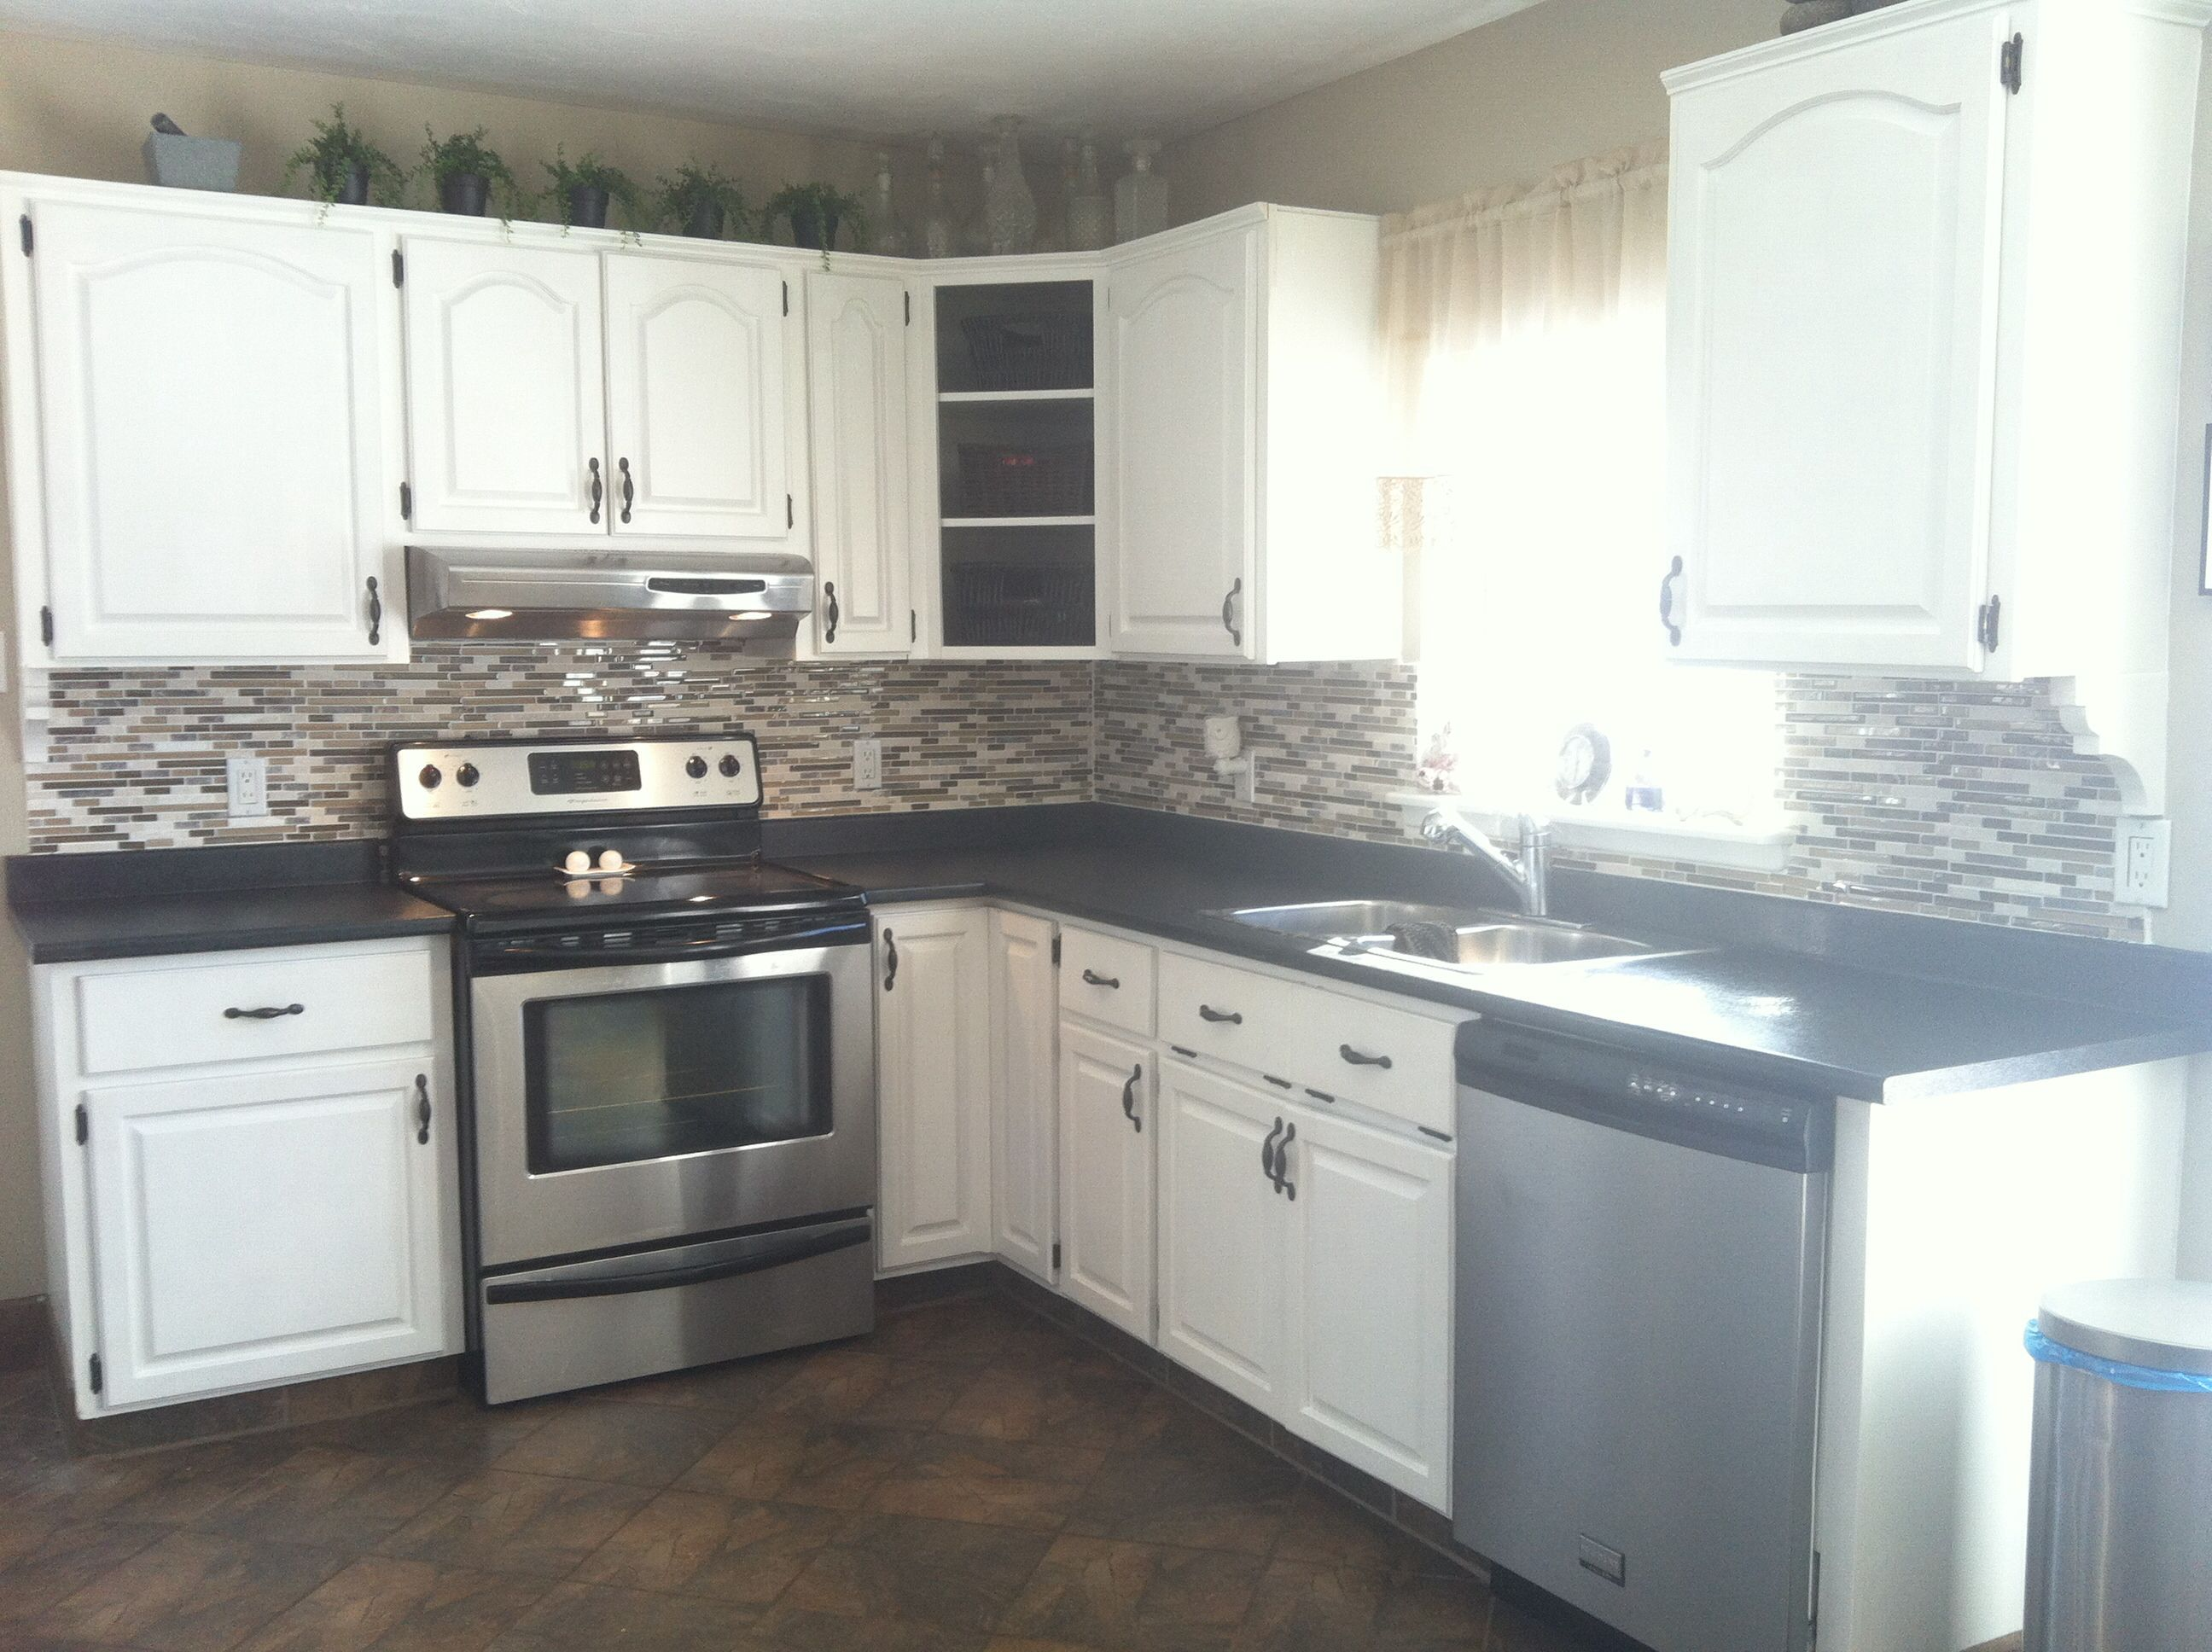 Lied The Jet Black Beauti Tone Countertop Transformation Kit Painted Cupboards With